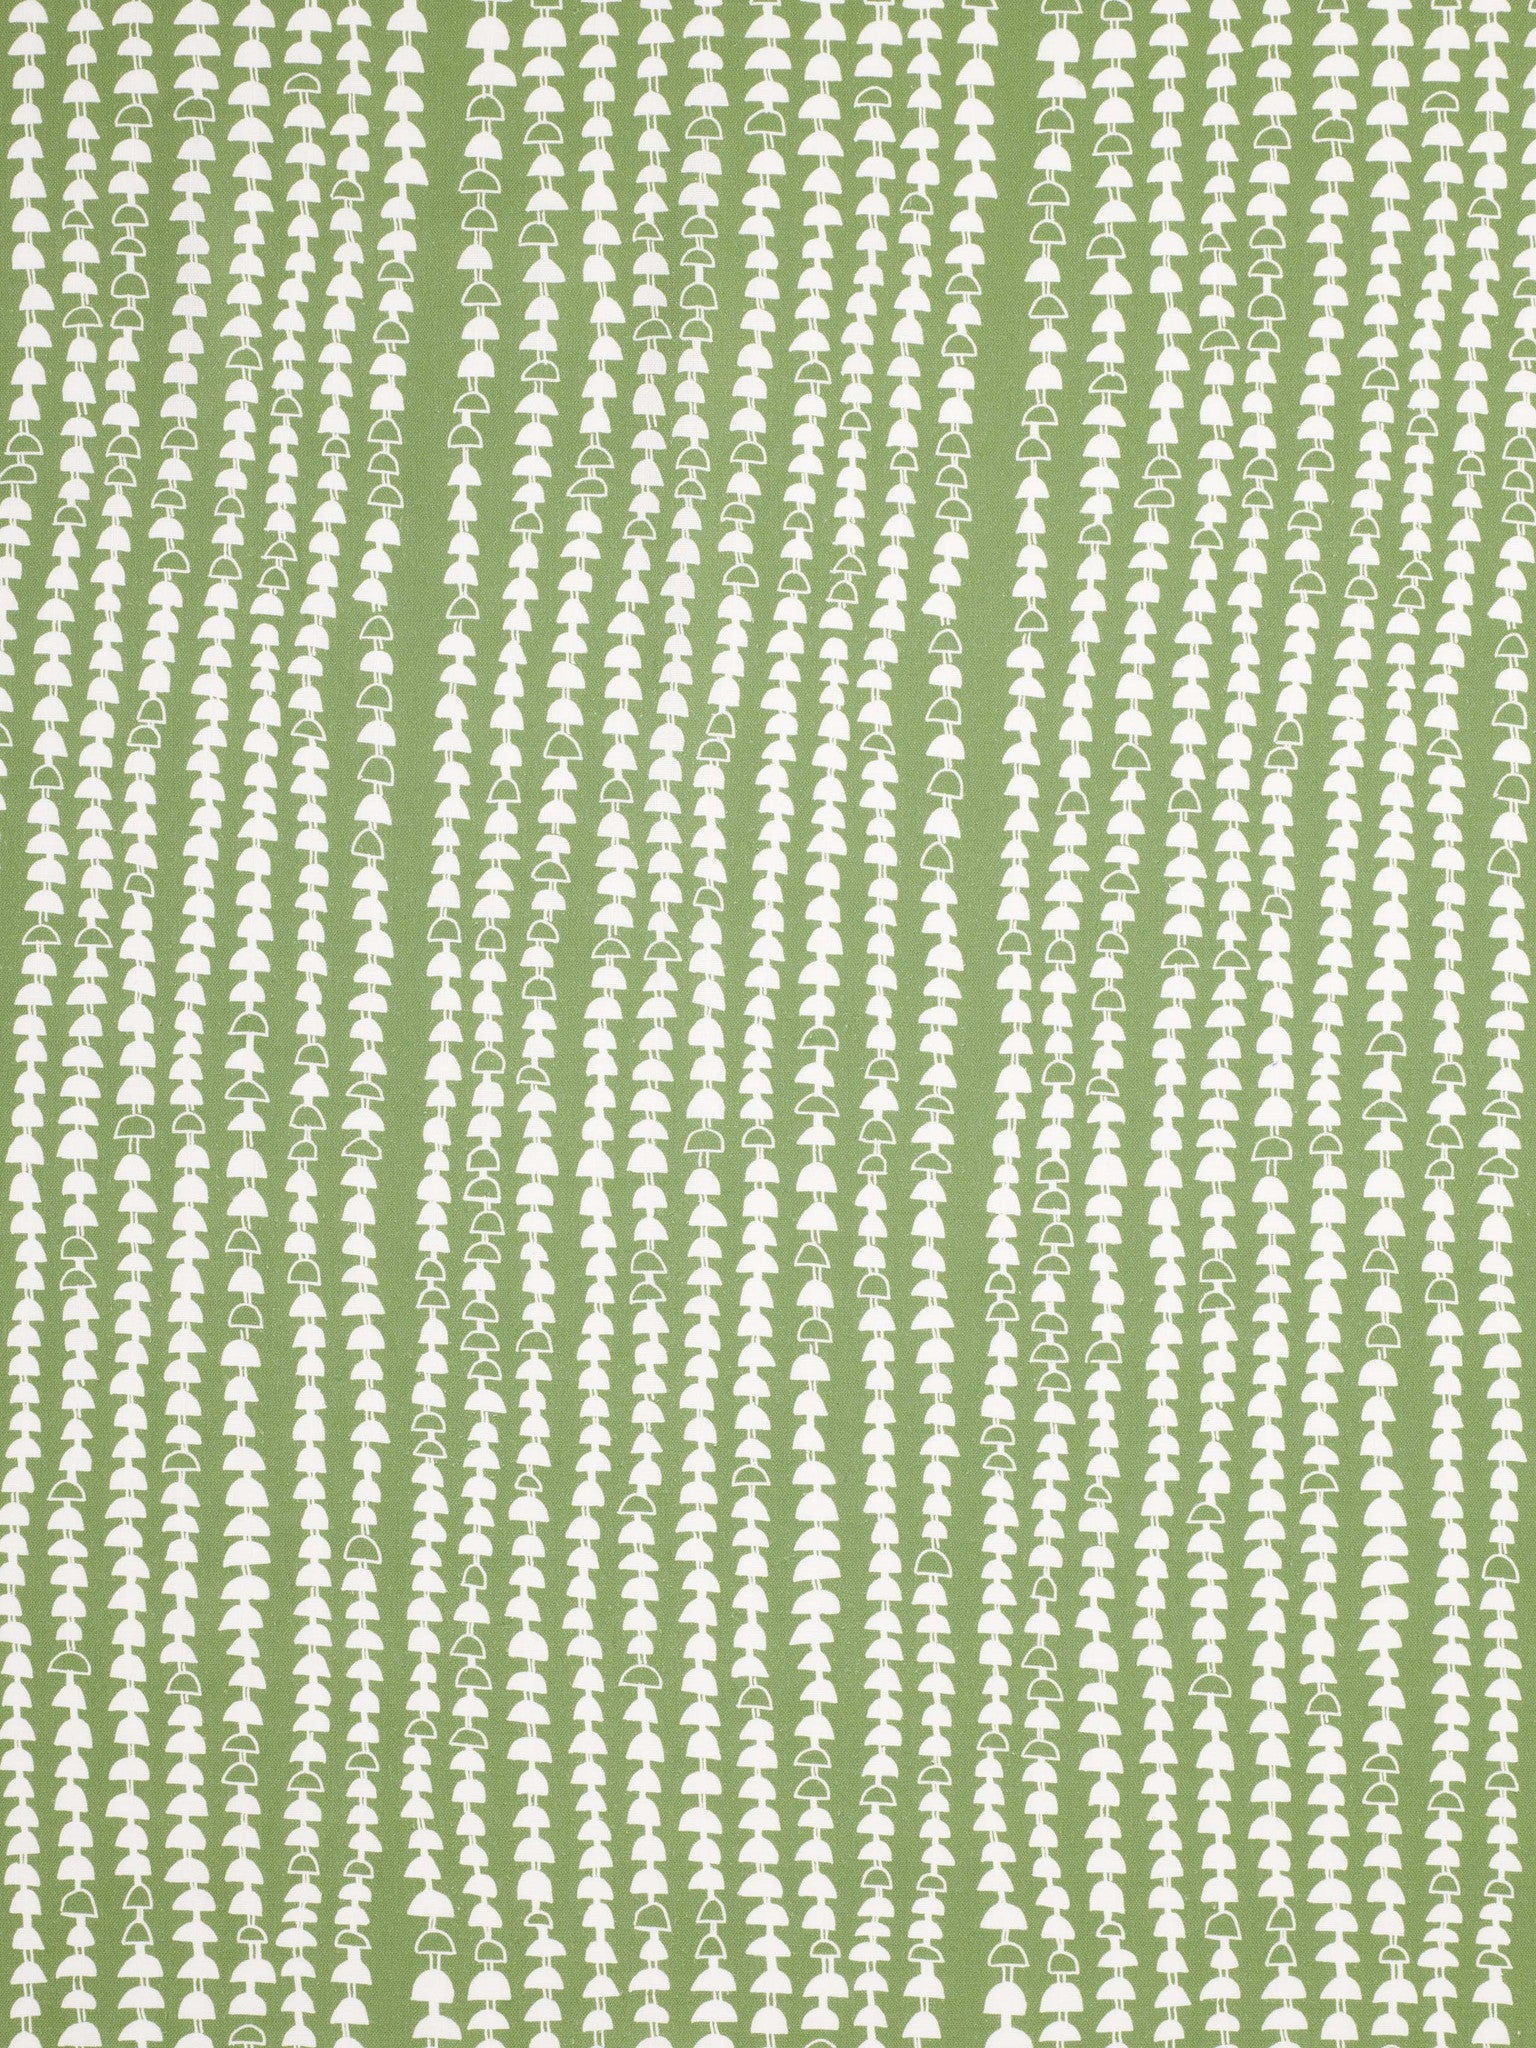 Hopi Graphic Strung Bead Pattern Cotton Linen & Canvas Fabric by the Yard in Avocado Green